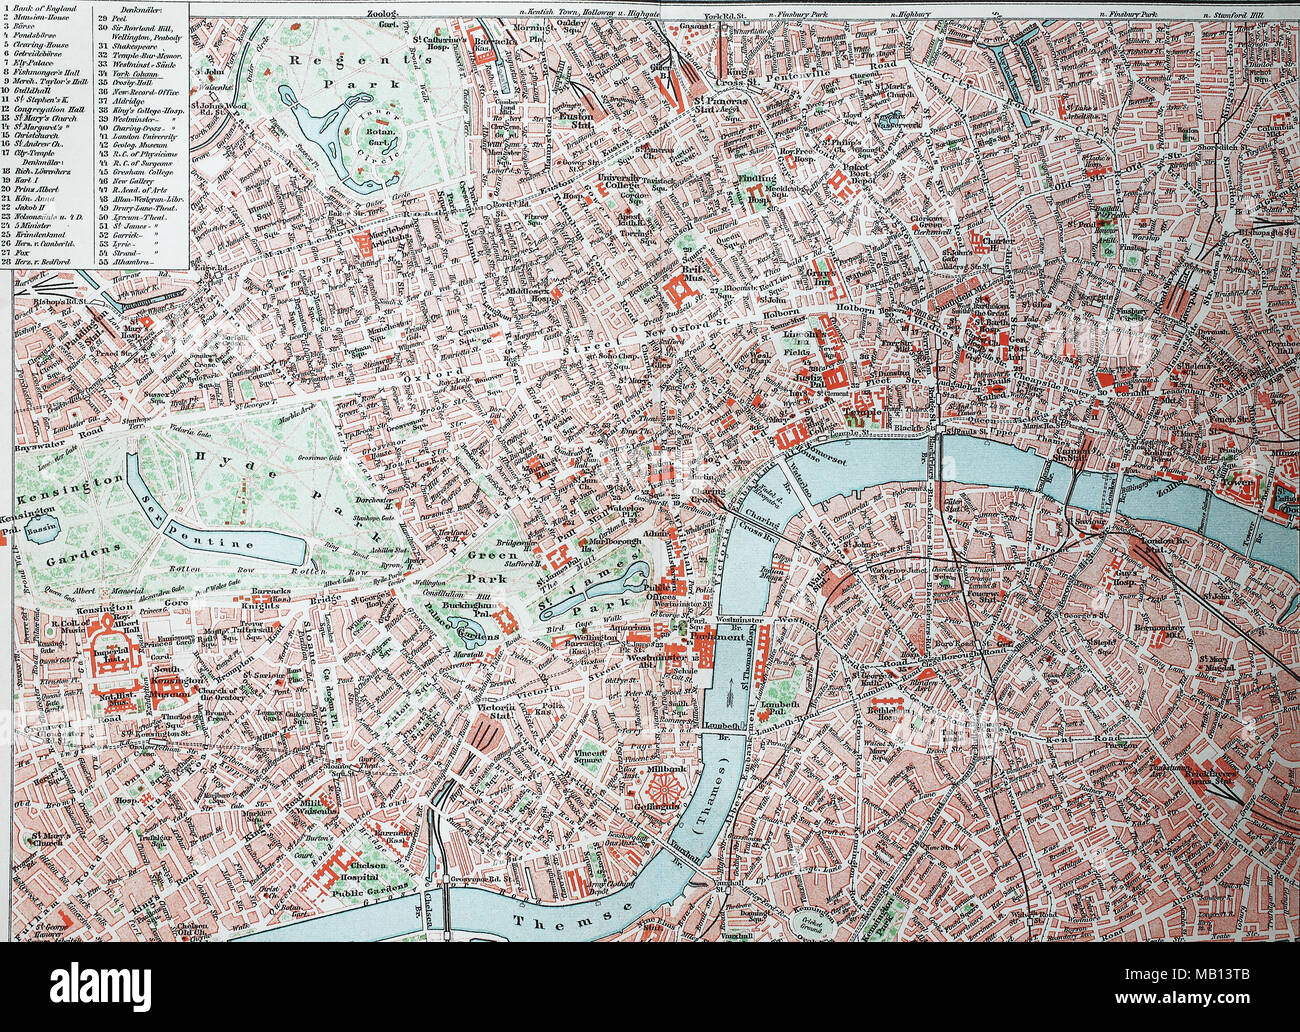 Stadtplan von London, City und Westend, England, 1895, city map of London, digital improved reproduction of an original print from the year 1895 - Stock Image